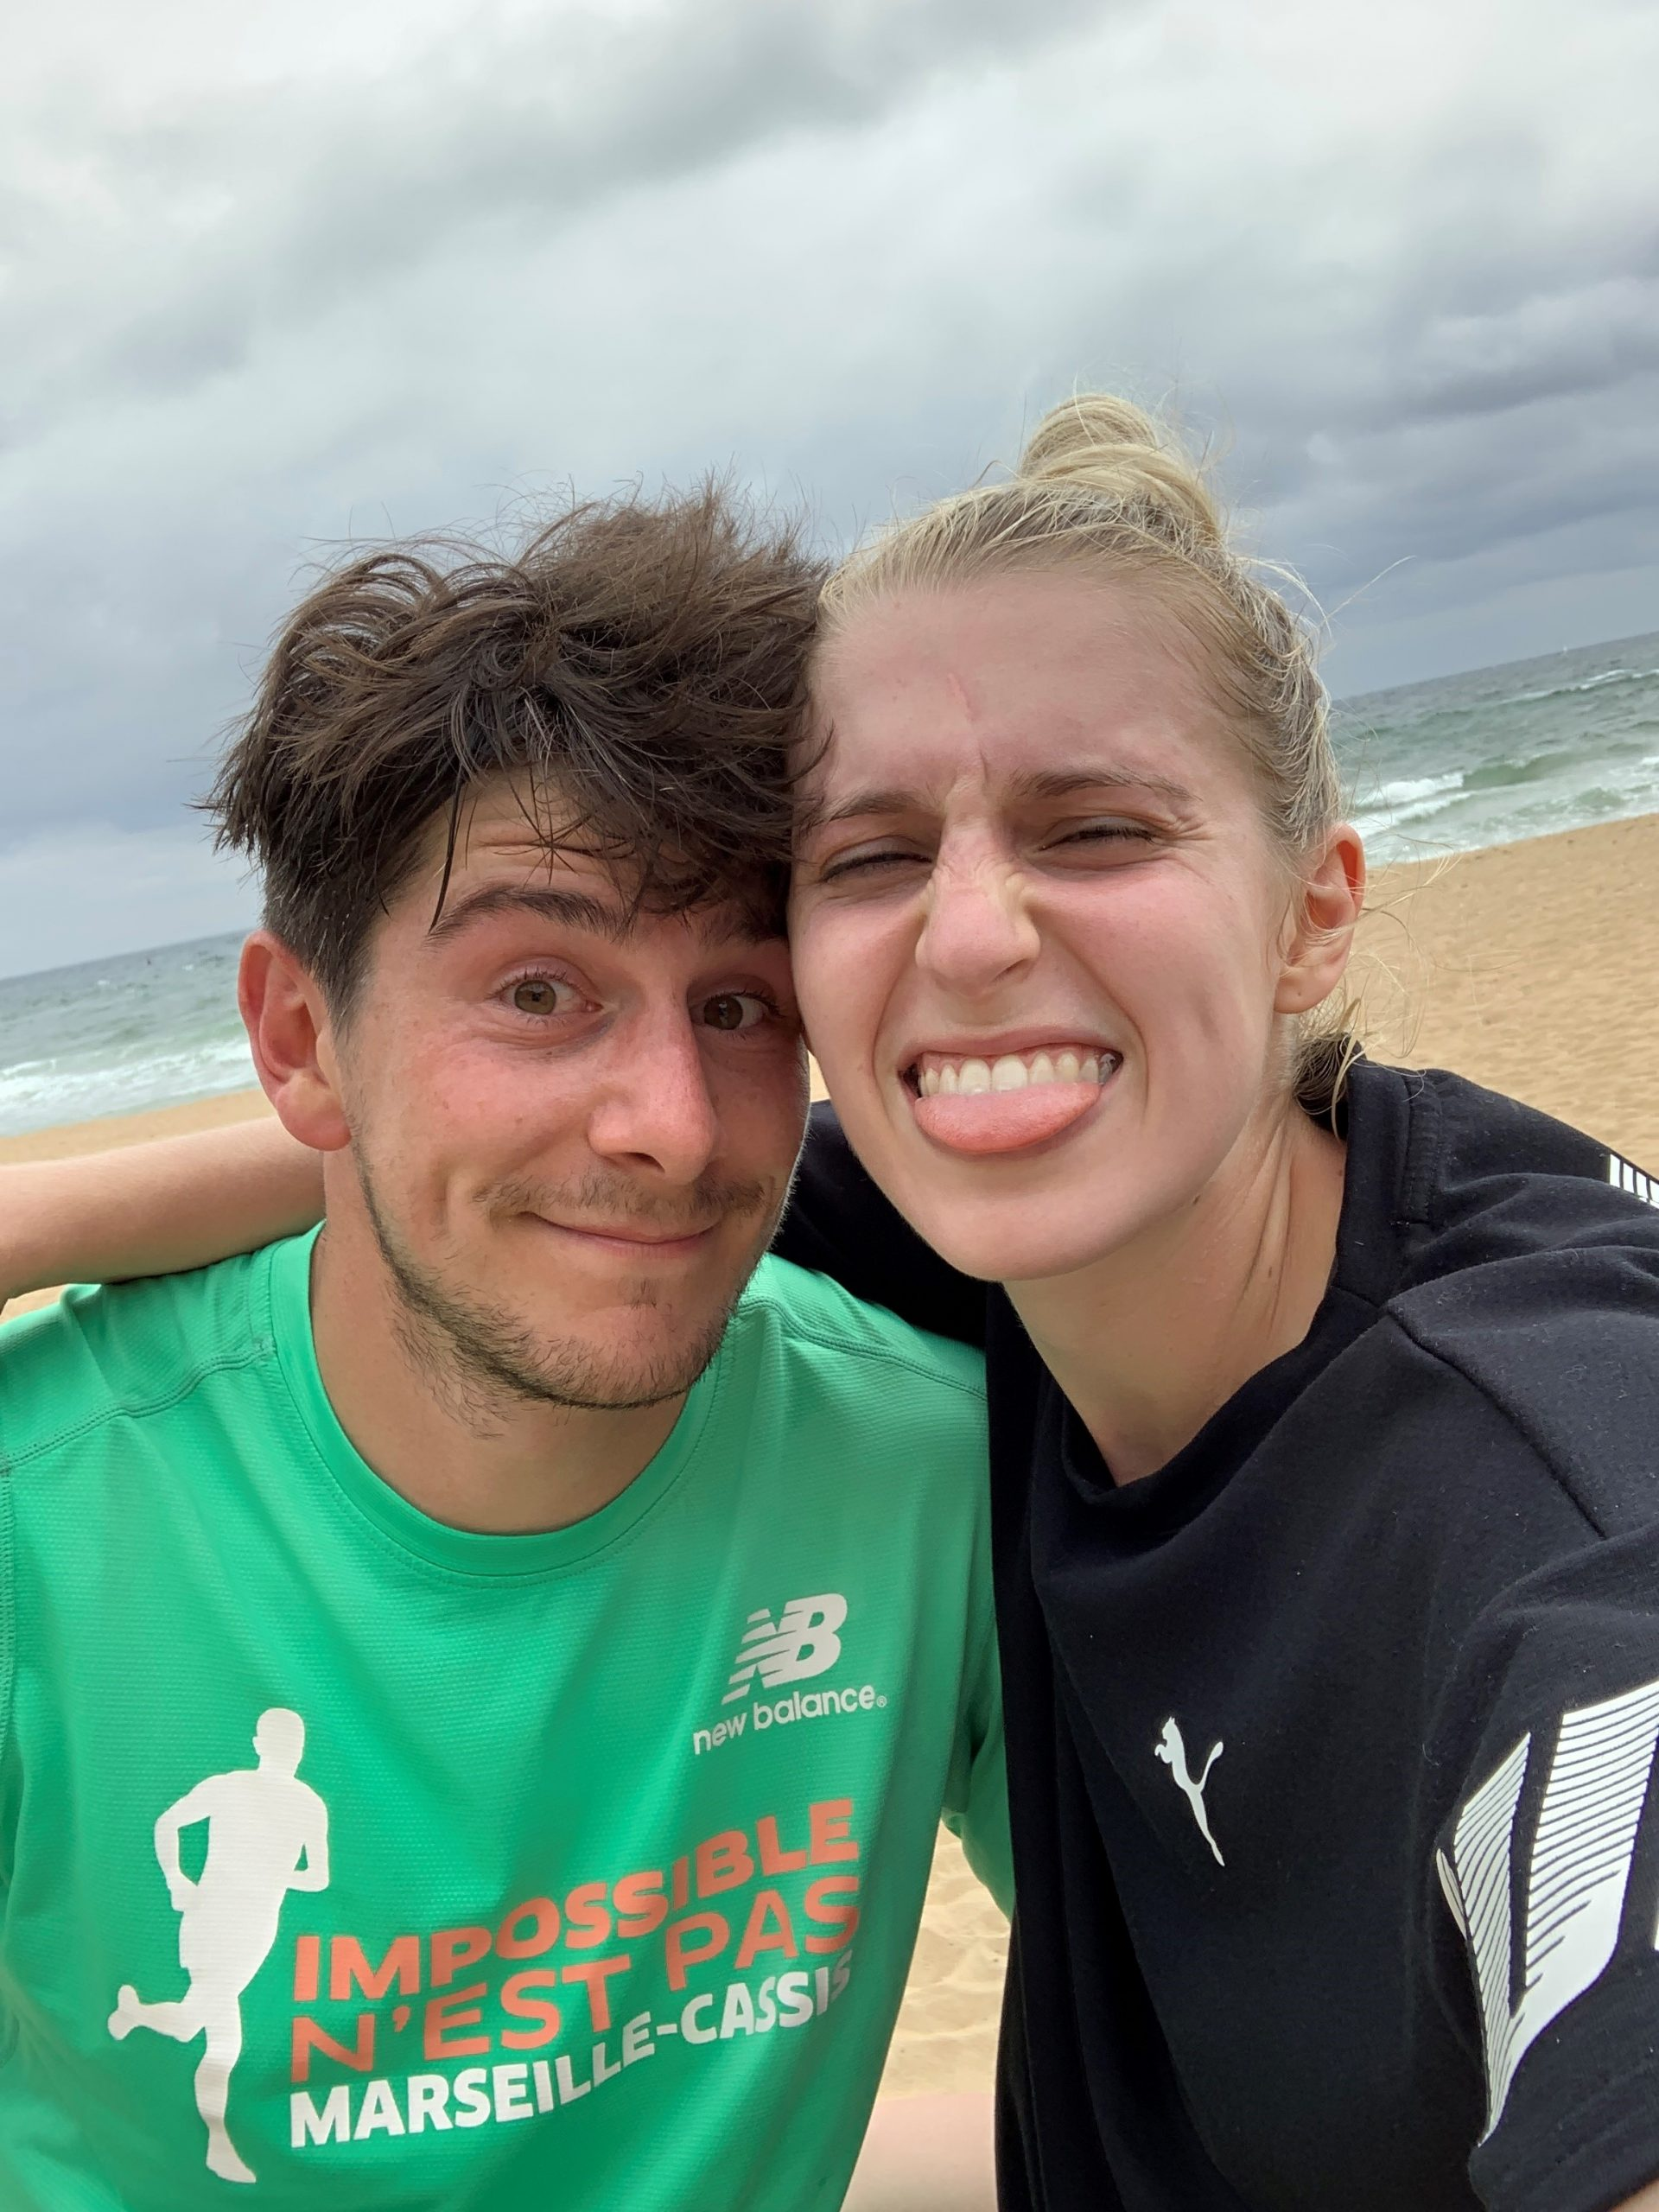 Abi and Alex taking a selfie together on a windswept beach